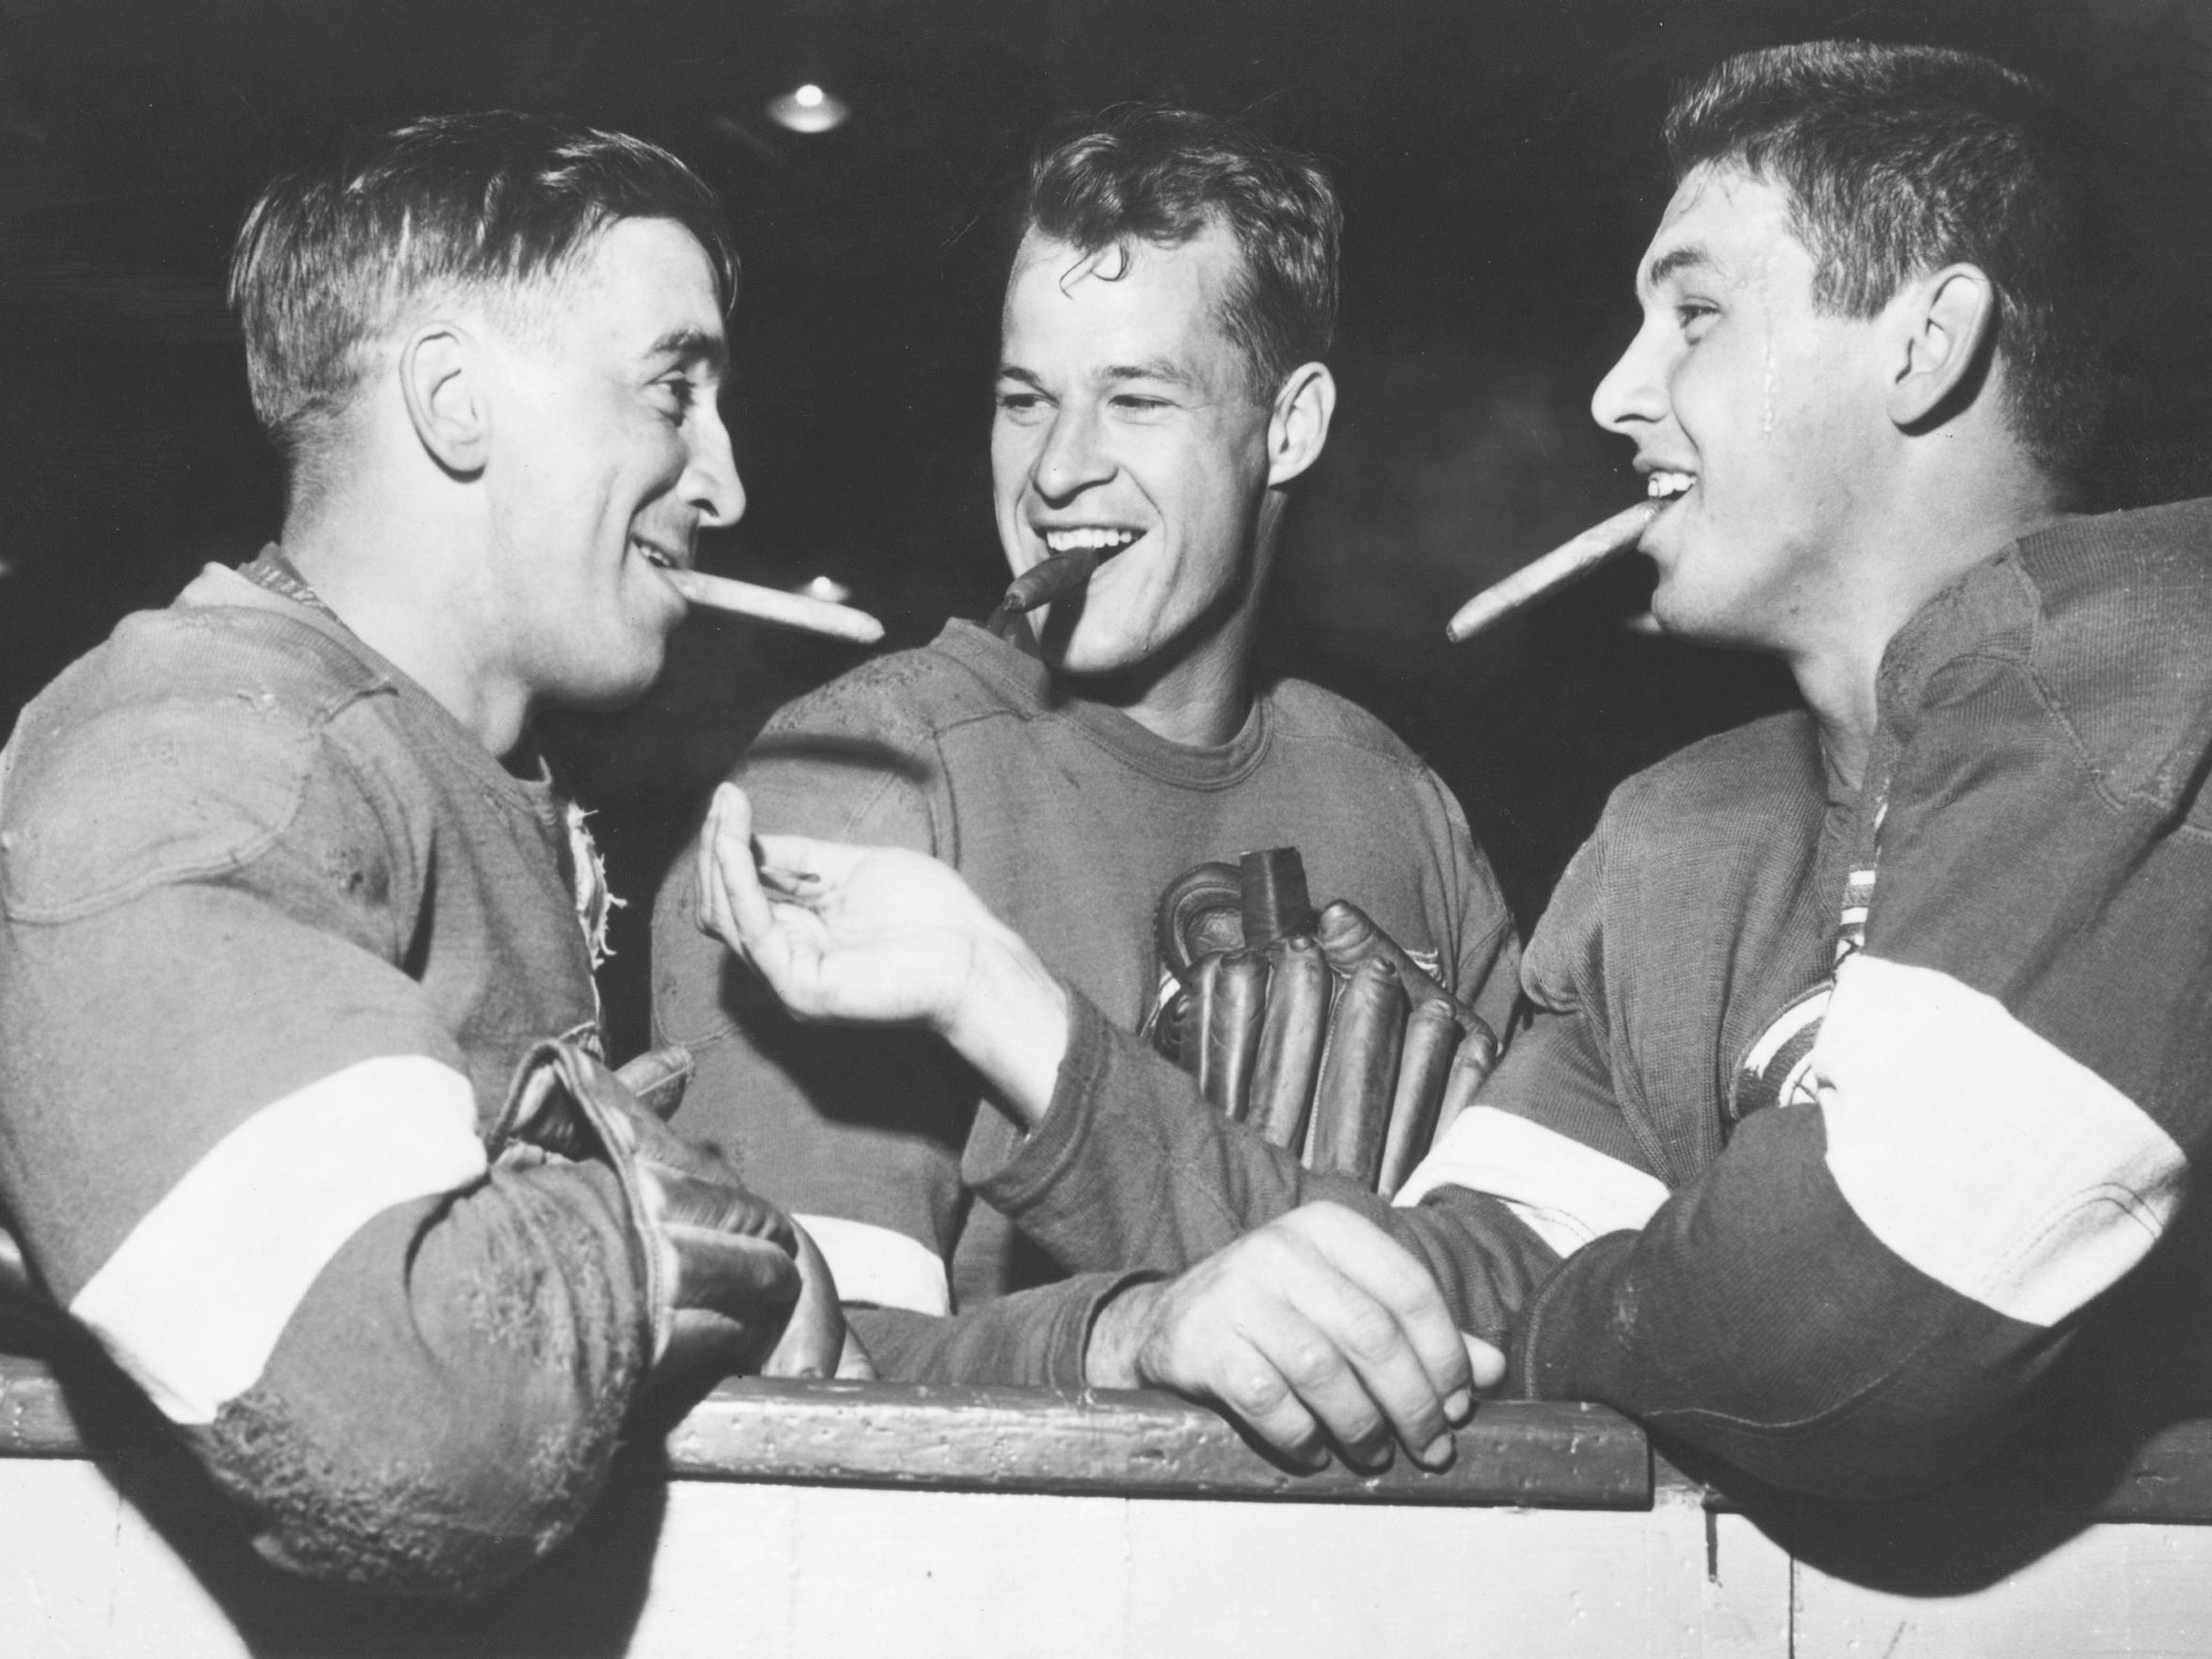 From left to right: Ted Lindsay, Gordie Howe and Alex Delvecchio. The Wings won four Stanley Cups from 1948-55.